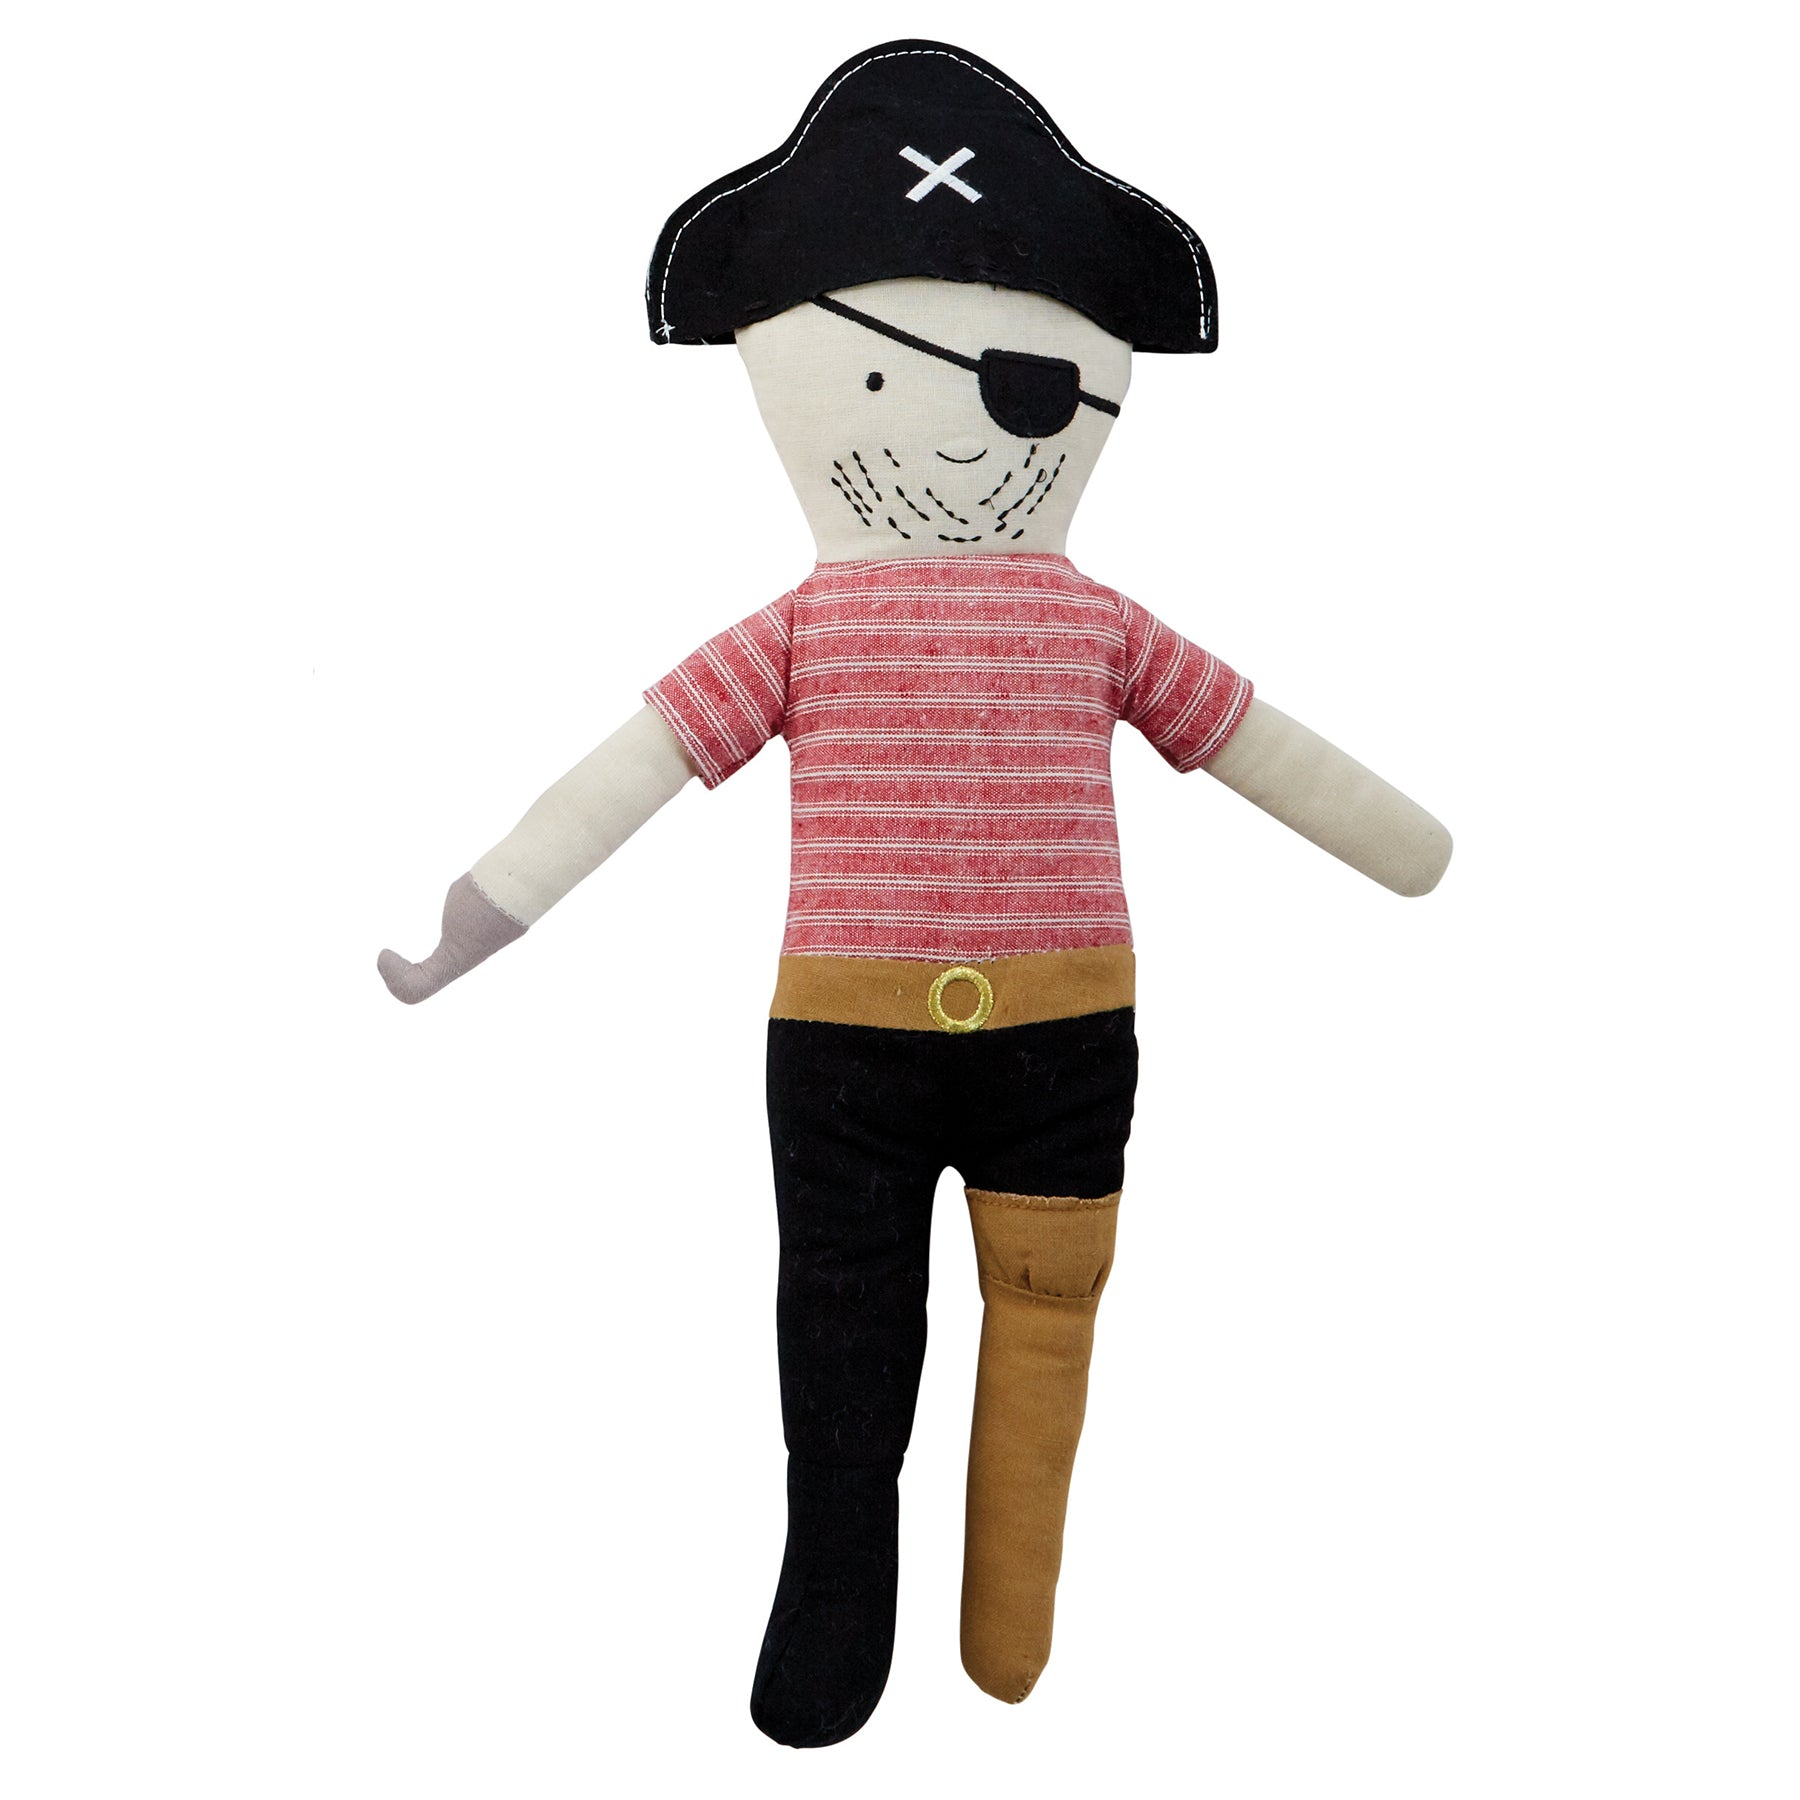 Bearded Pirate Doll